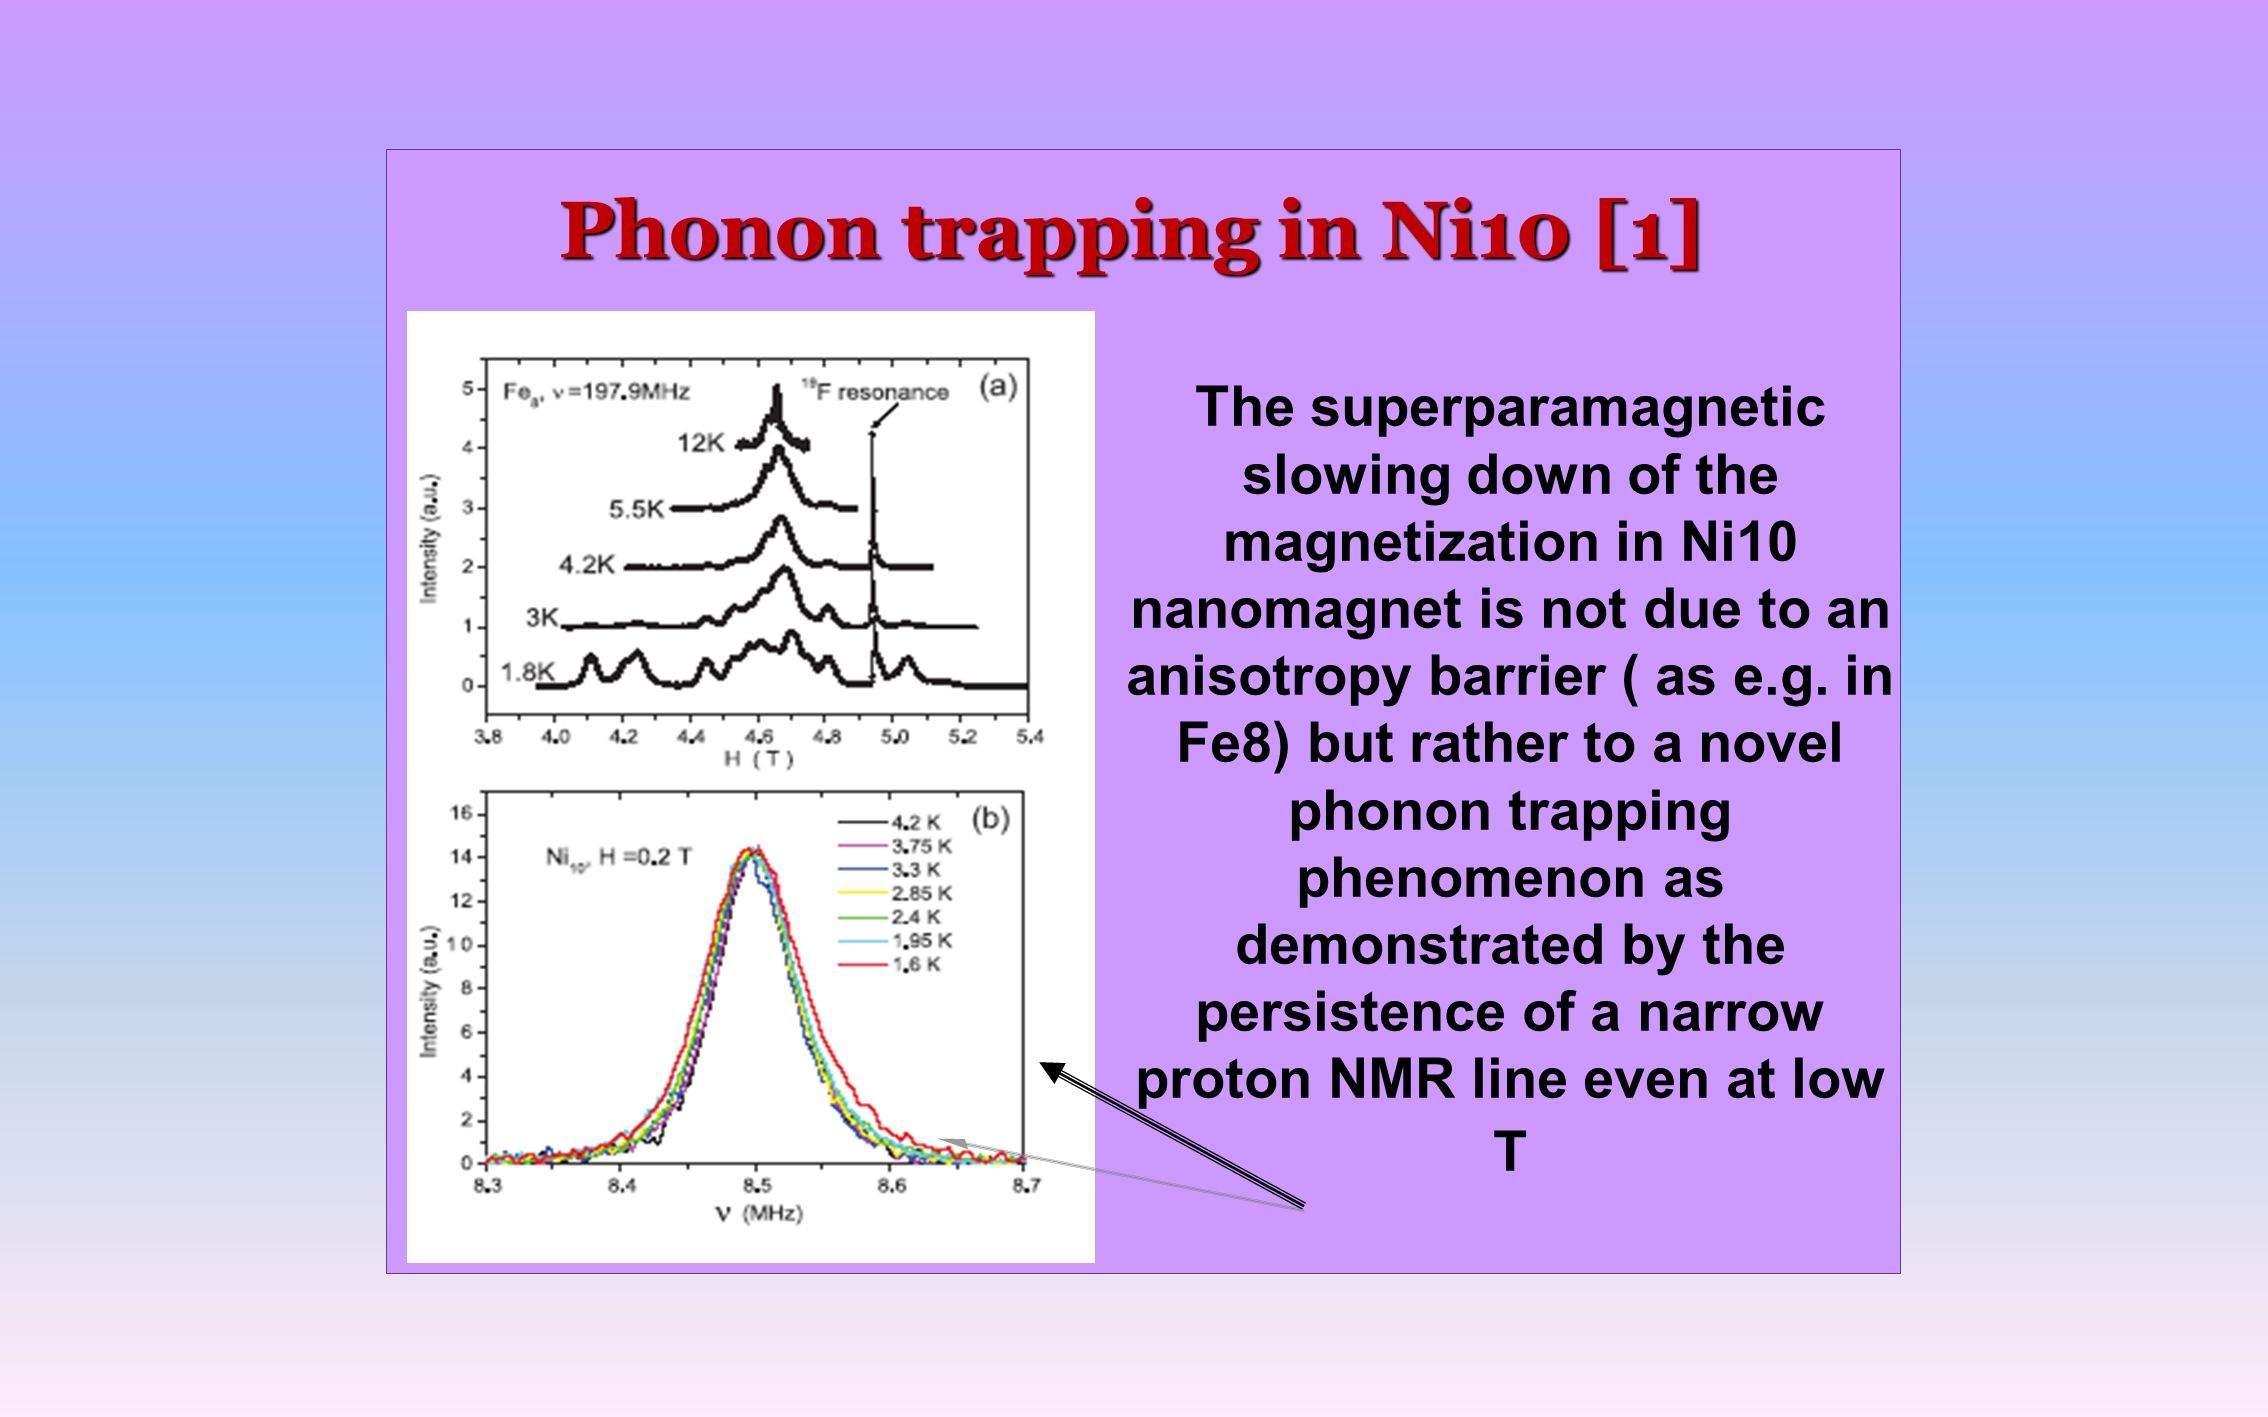 Phonon trapping in Ni10 [1]. The superparamagnetic slowing down of the magnetization in Ni10 nanomagnet is not due to an anisotropy barrier ( as e.g.